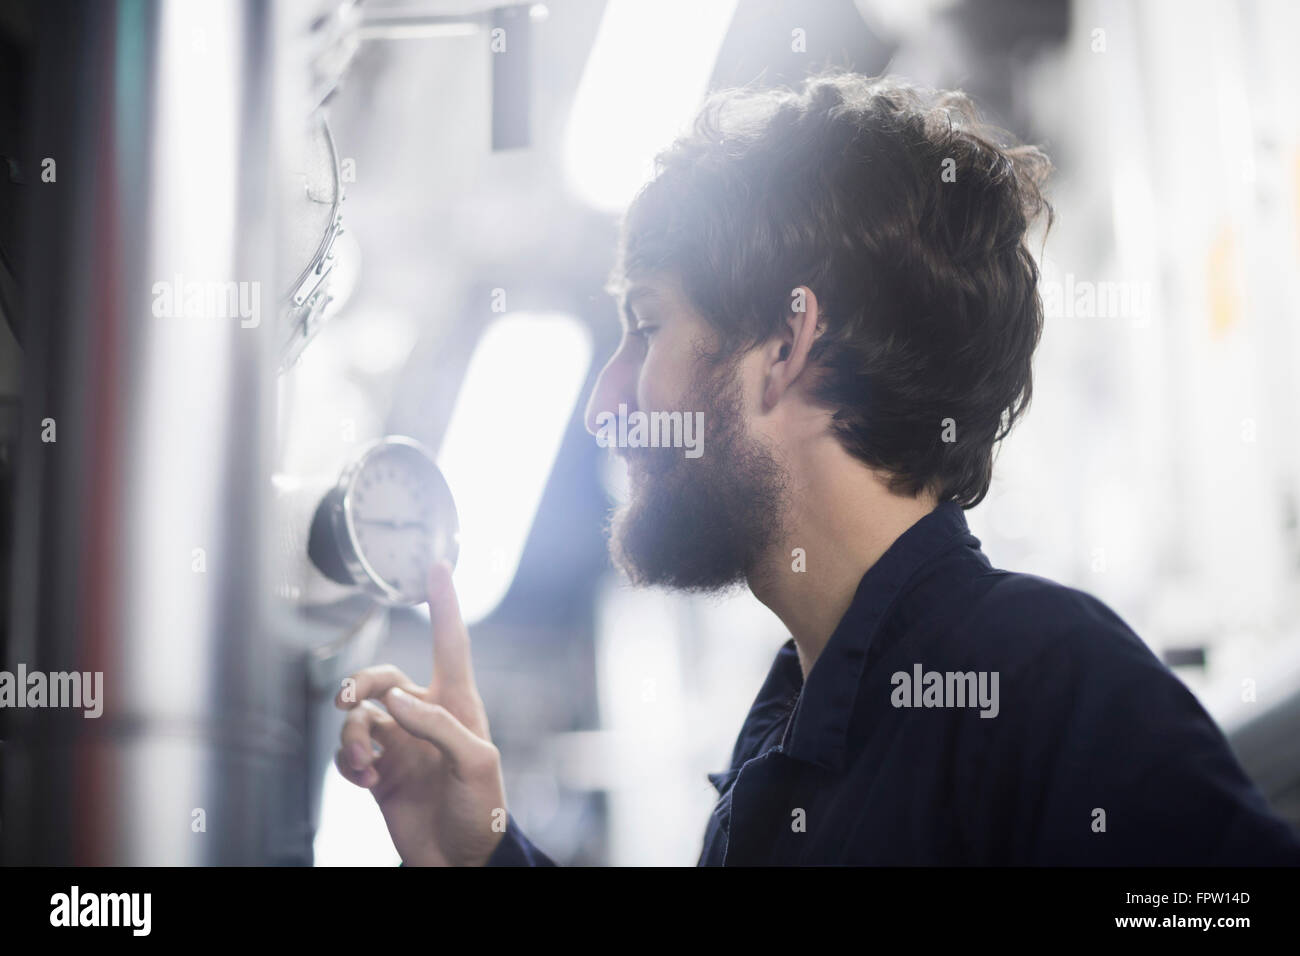 Young male engineer examining gauge in an industrial plant, Freiburg Im Breisgau, Baden-Württemberg, Germany - Stock Image